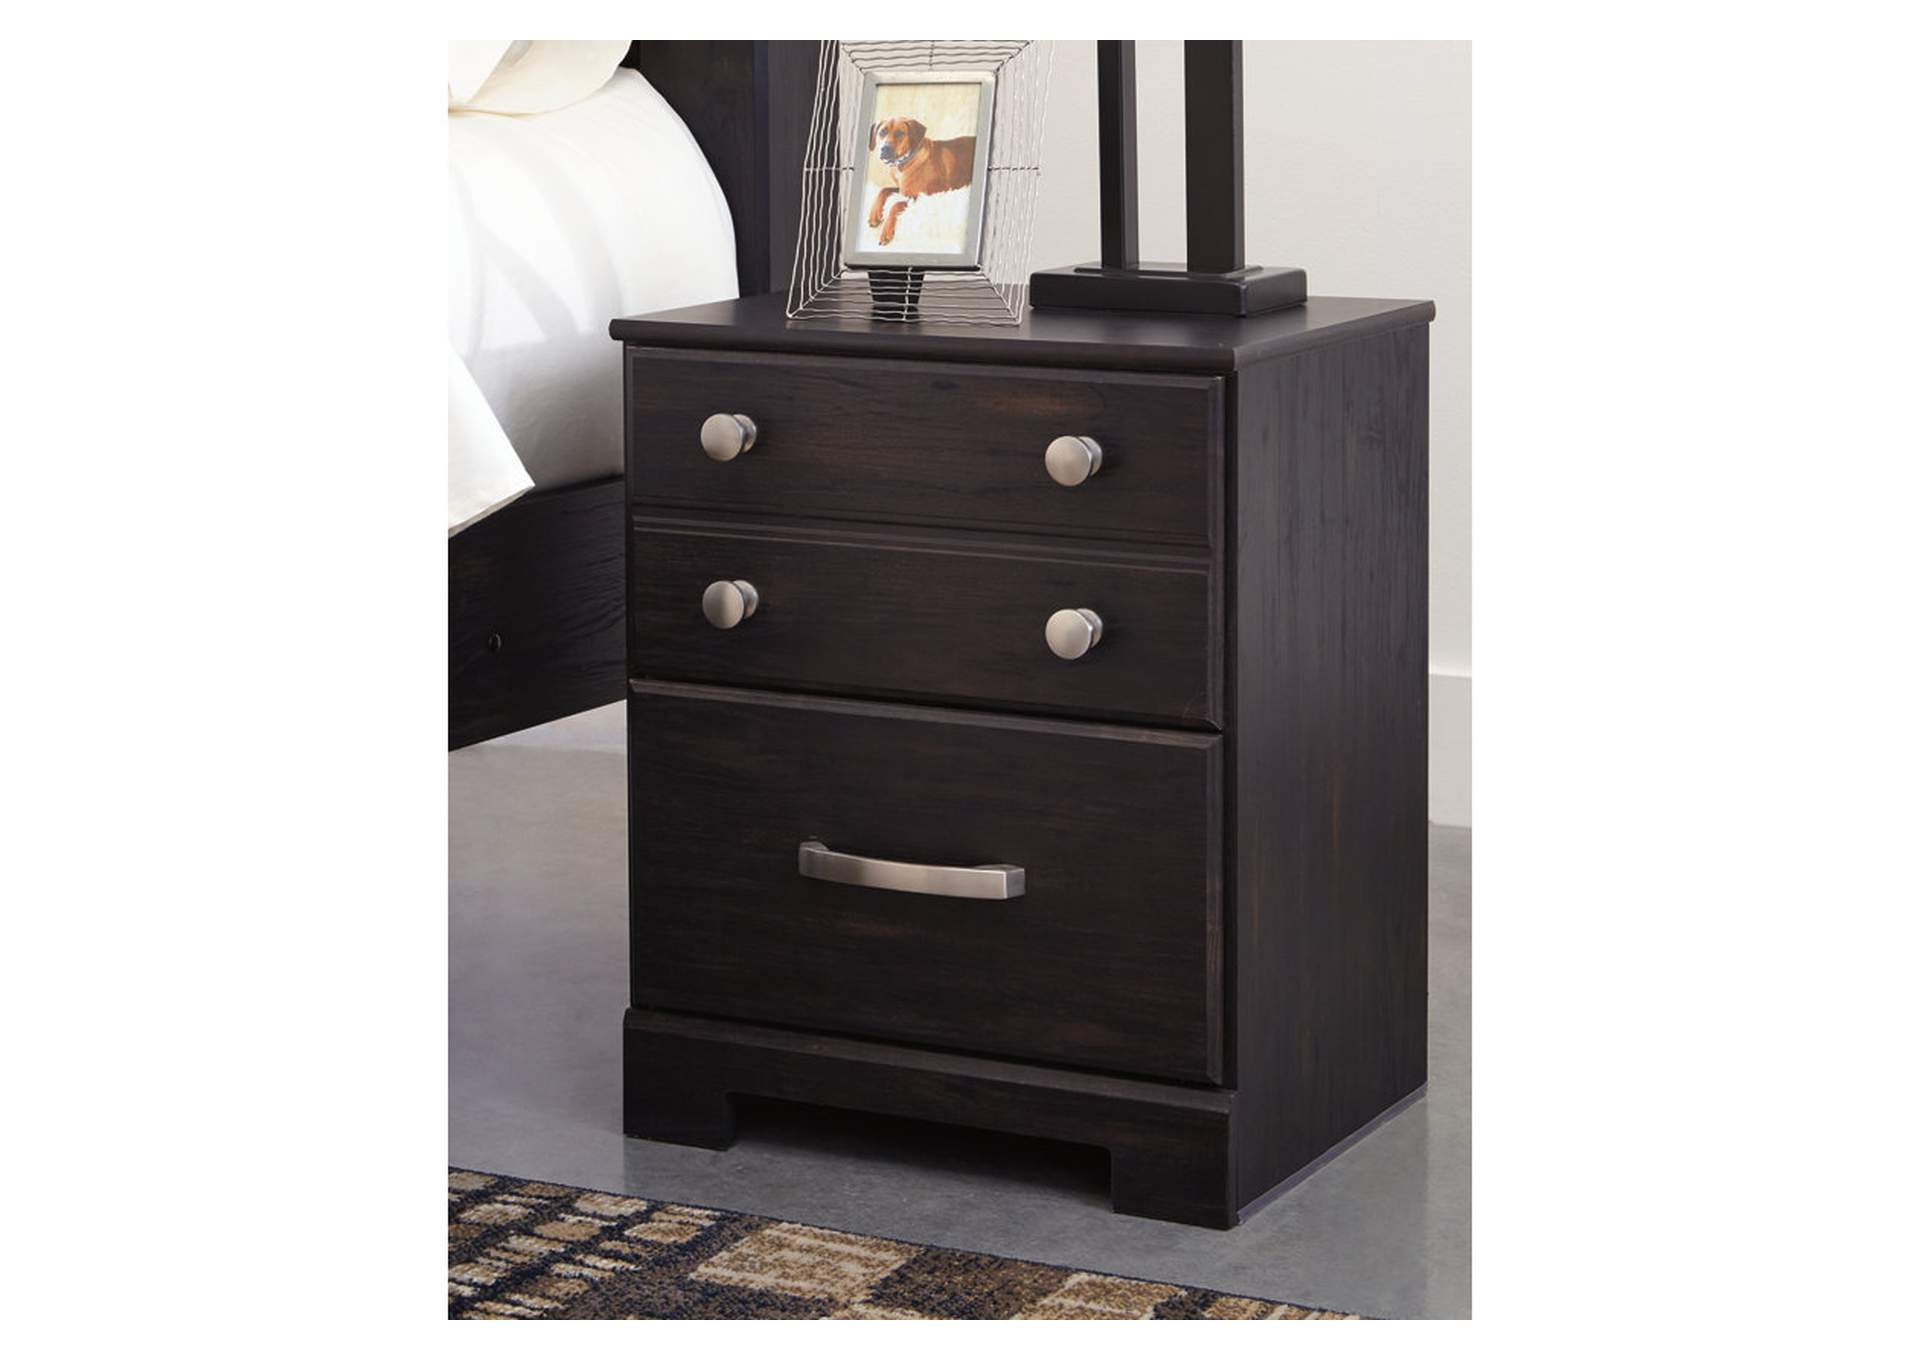 Reylow 2 Drawer Nightstand,Signature Design By Ashley